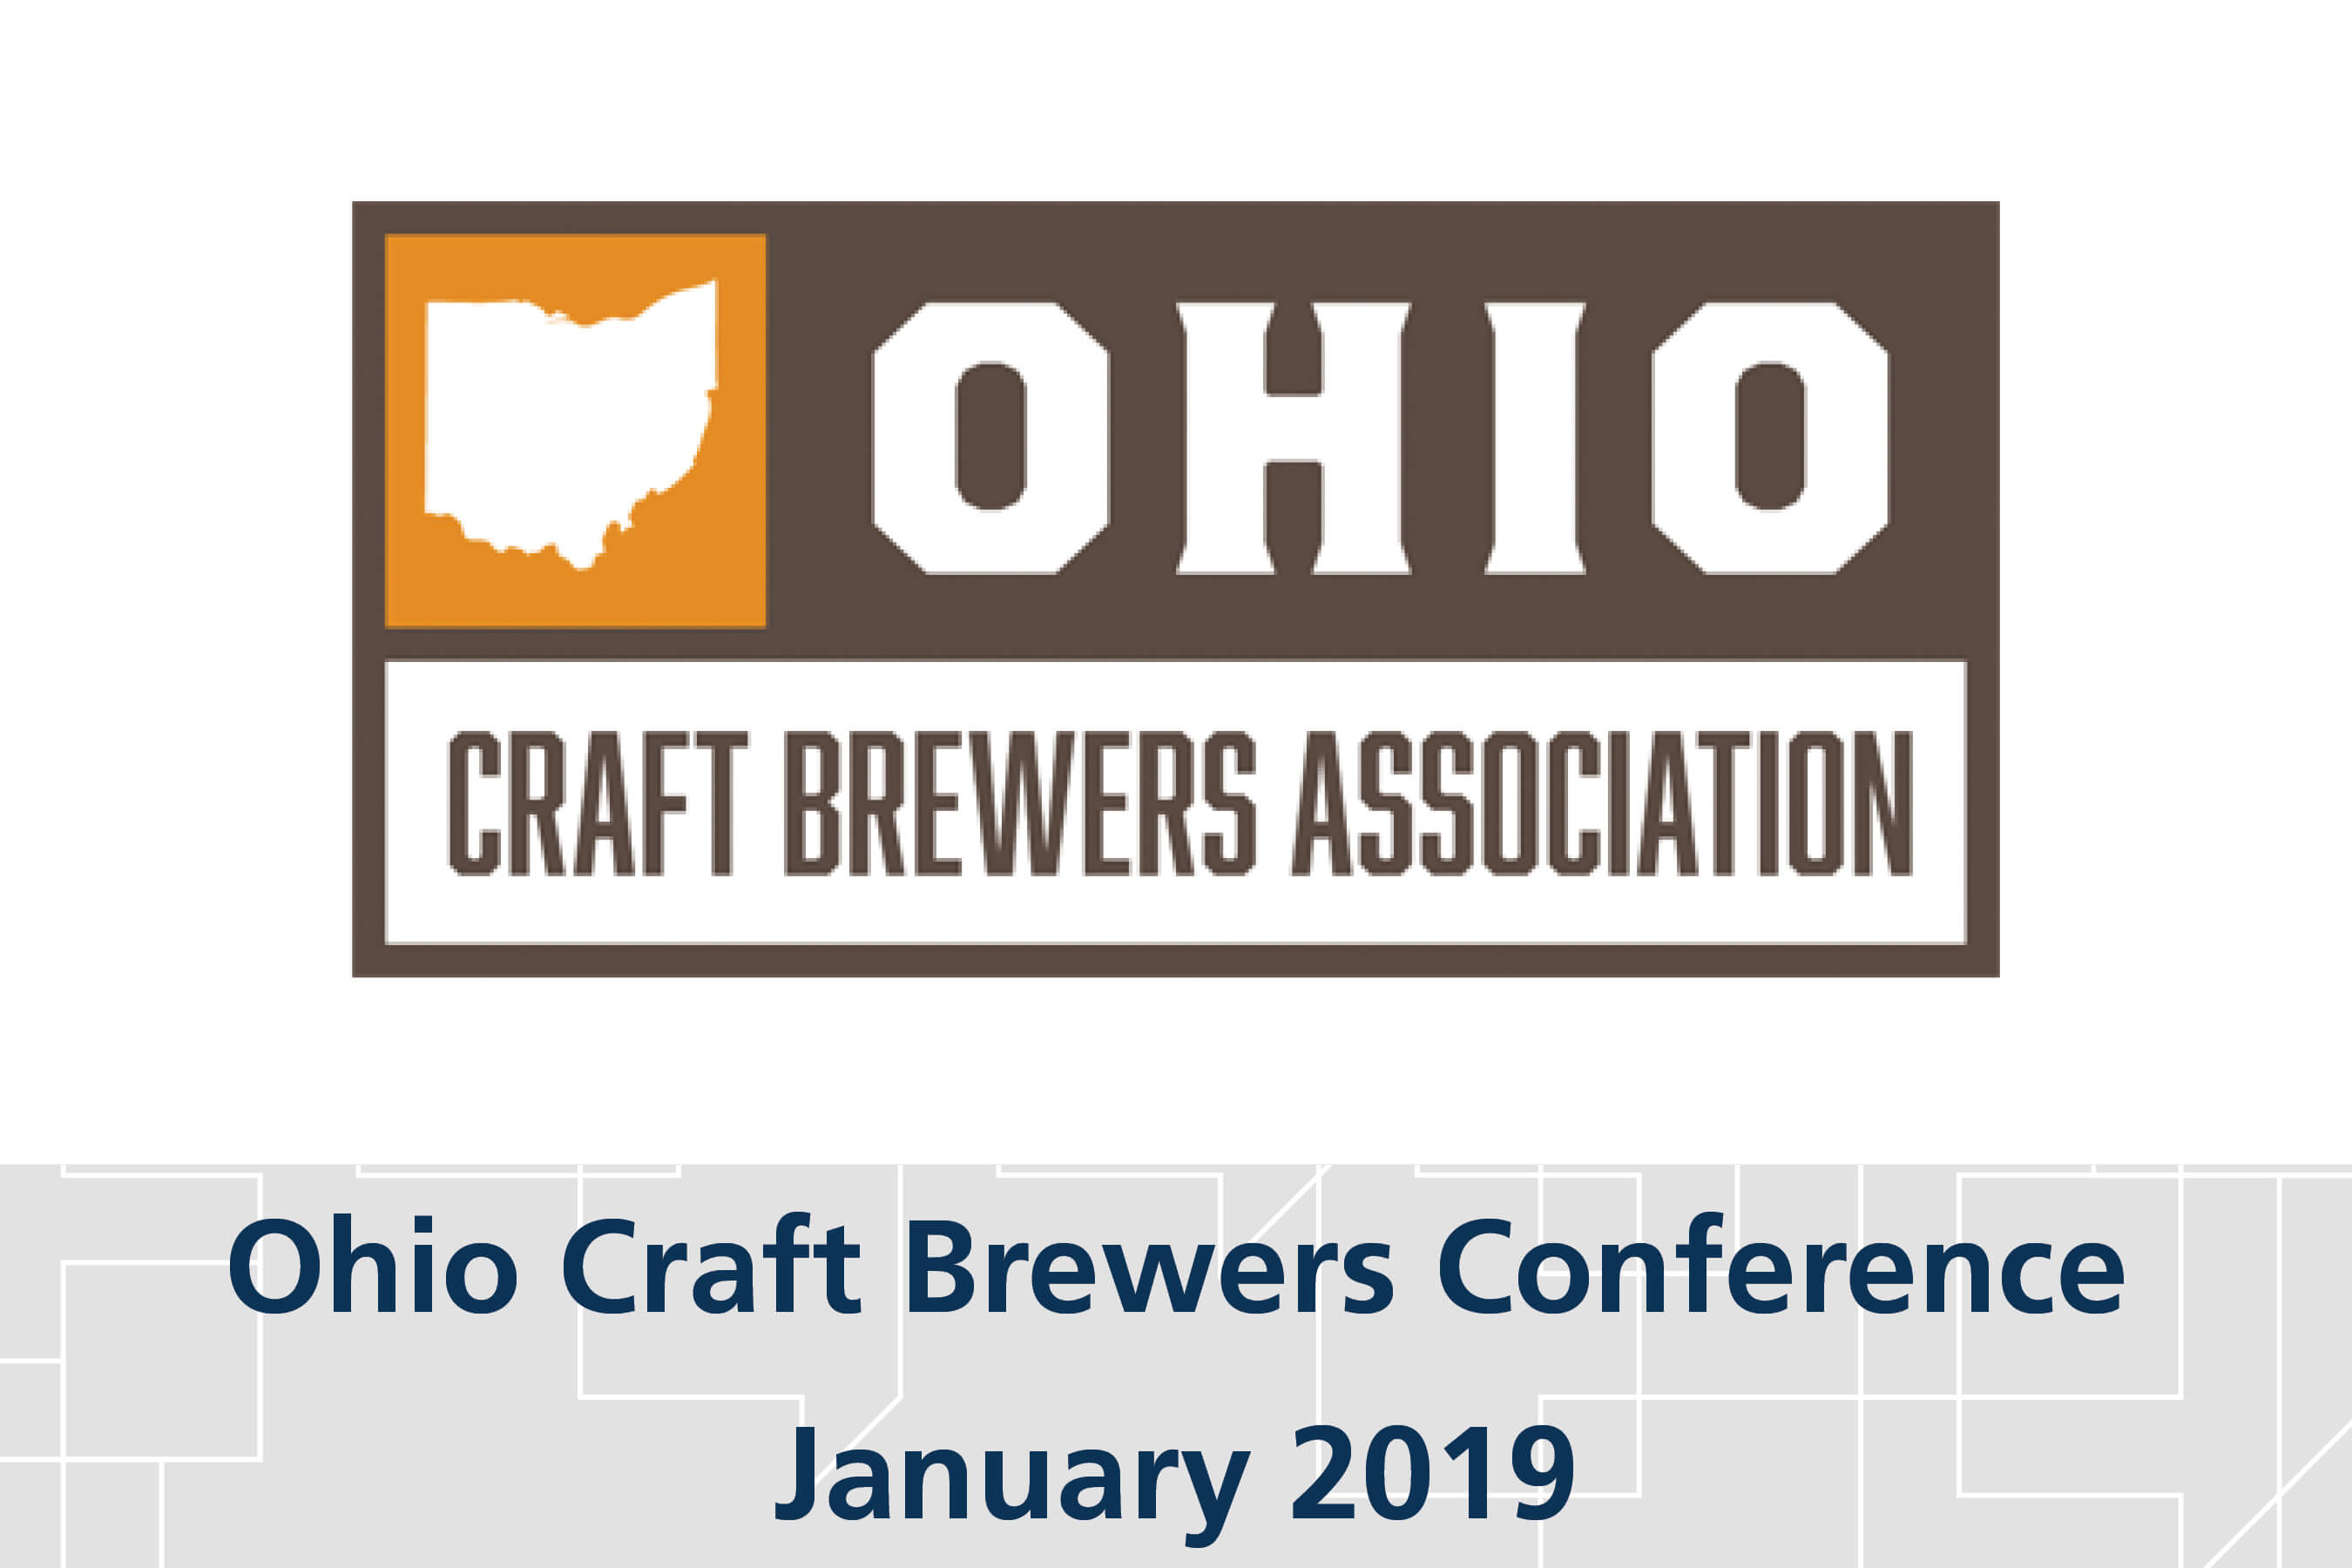 Ohio Craft Brewers Conference